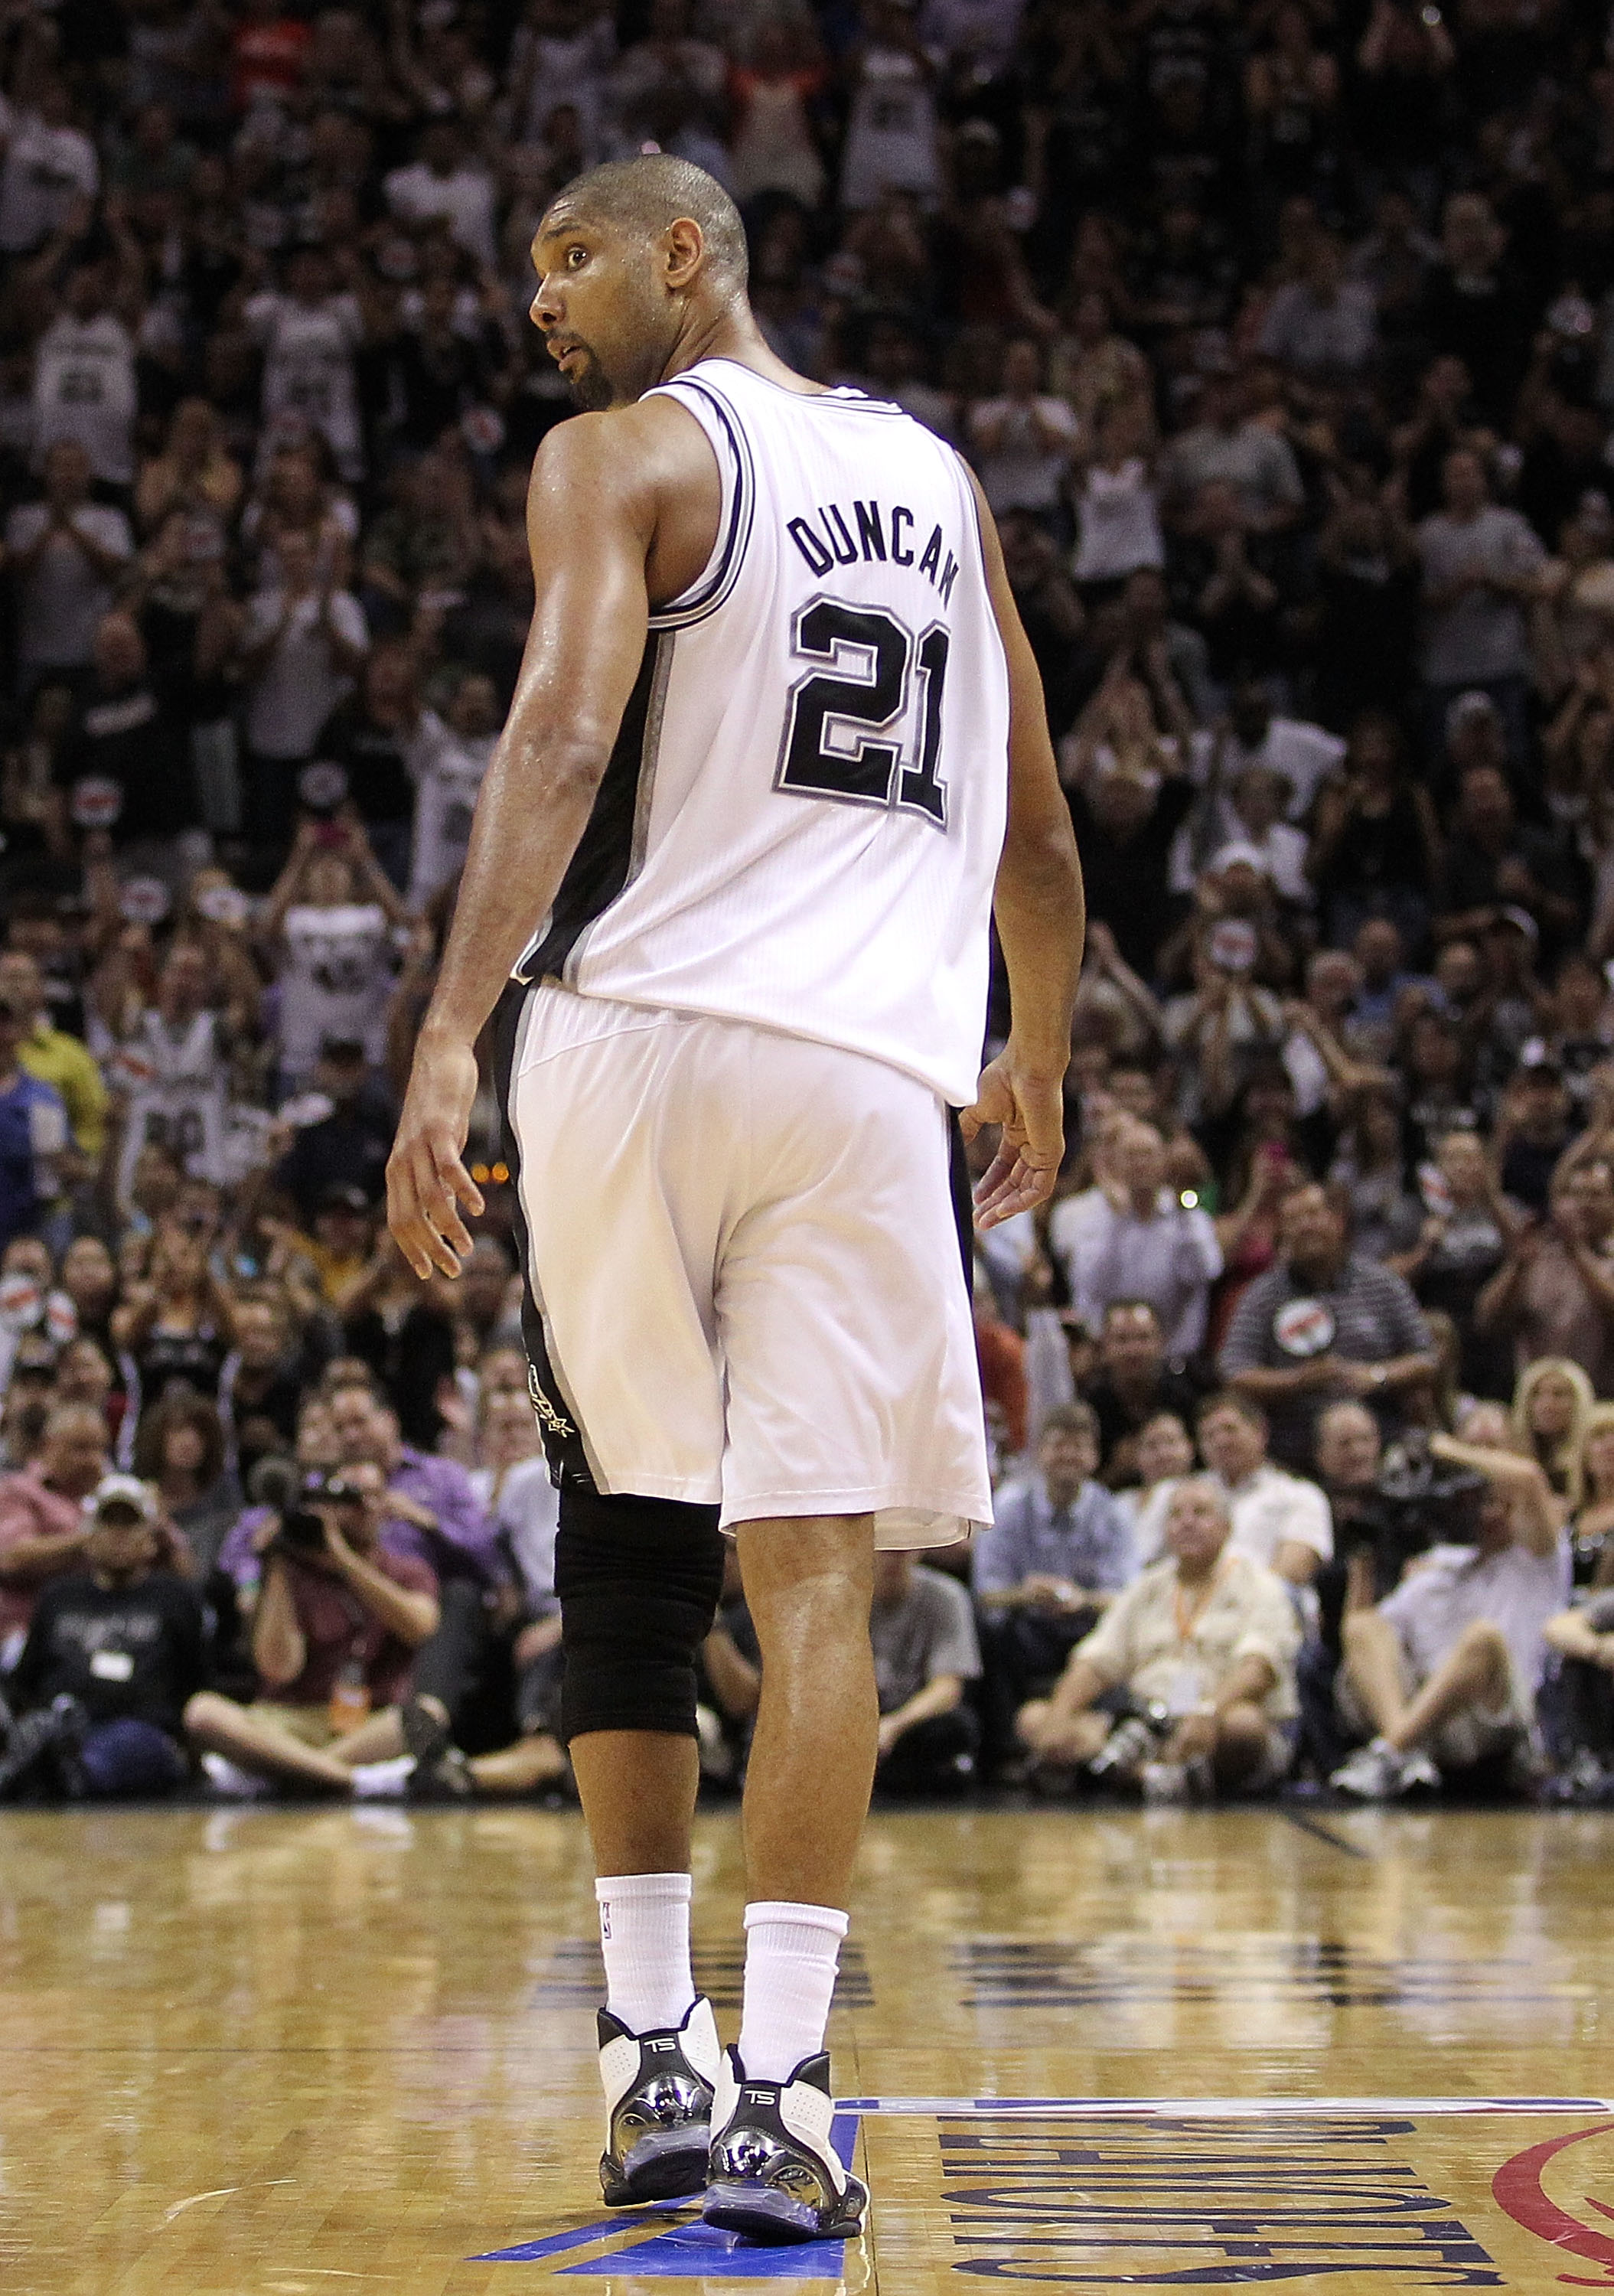 SAN ANTONIO, TX - APRIL 20:  Forward Tim Duncan #21 of the San Antonio Spurs walks off the court after fouling out against the Memphis Grizzlies in Game Two of the Western Conference Quarterfinals in the 2011 NBA Playoffs on April 20, 2011 at AT&T Center